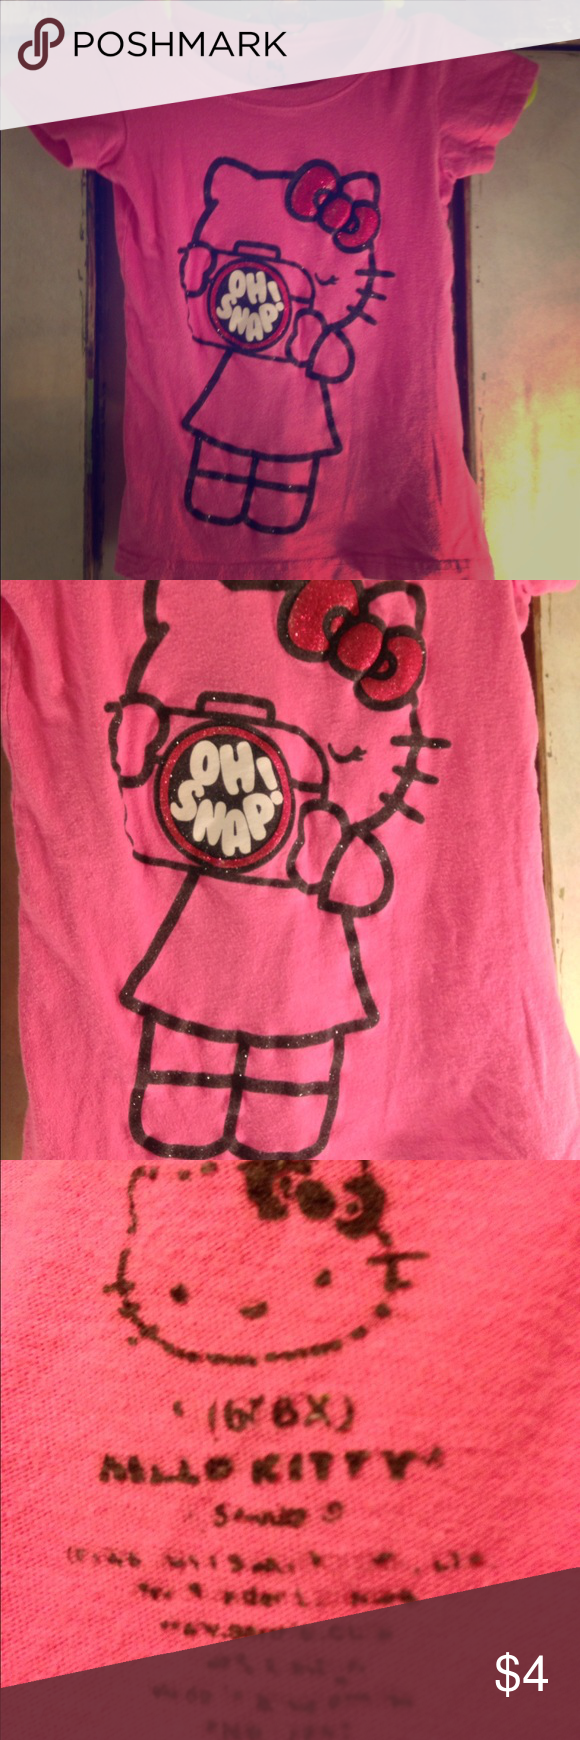 Girls Hello Kitty Shirt Size 6x. Girls Hello Kitty Shirt Size 6x. Hello Kitty Shirts & Tops Tees - Short Sleeve